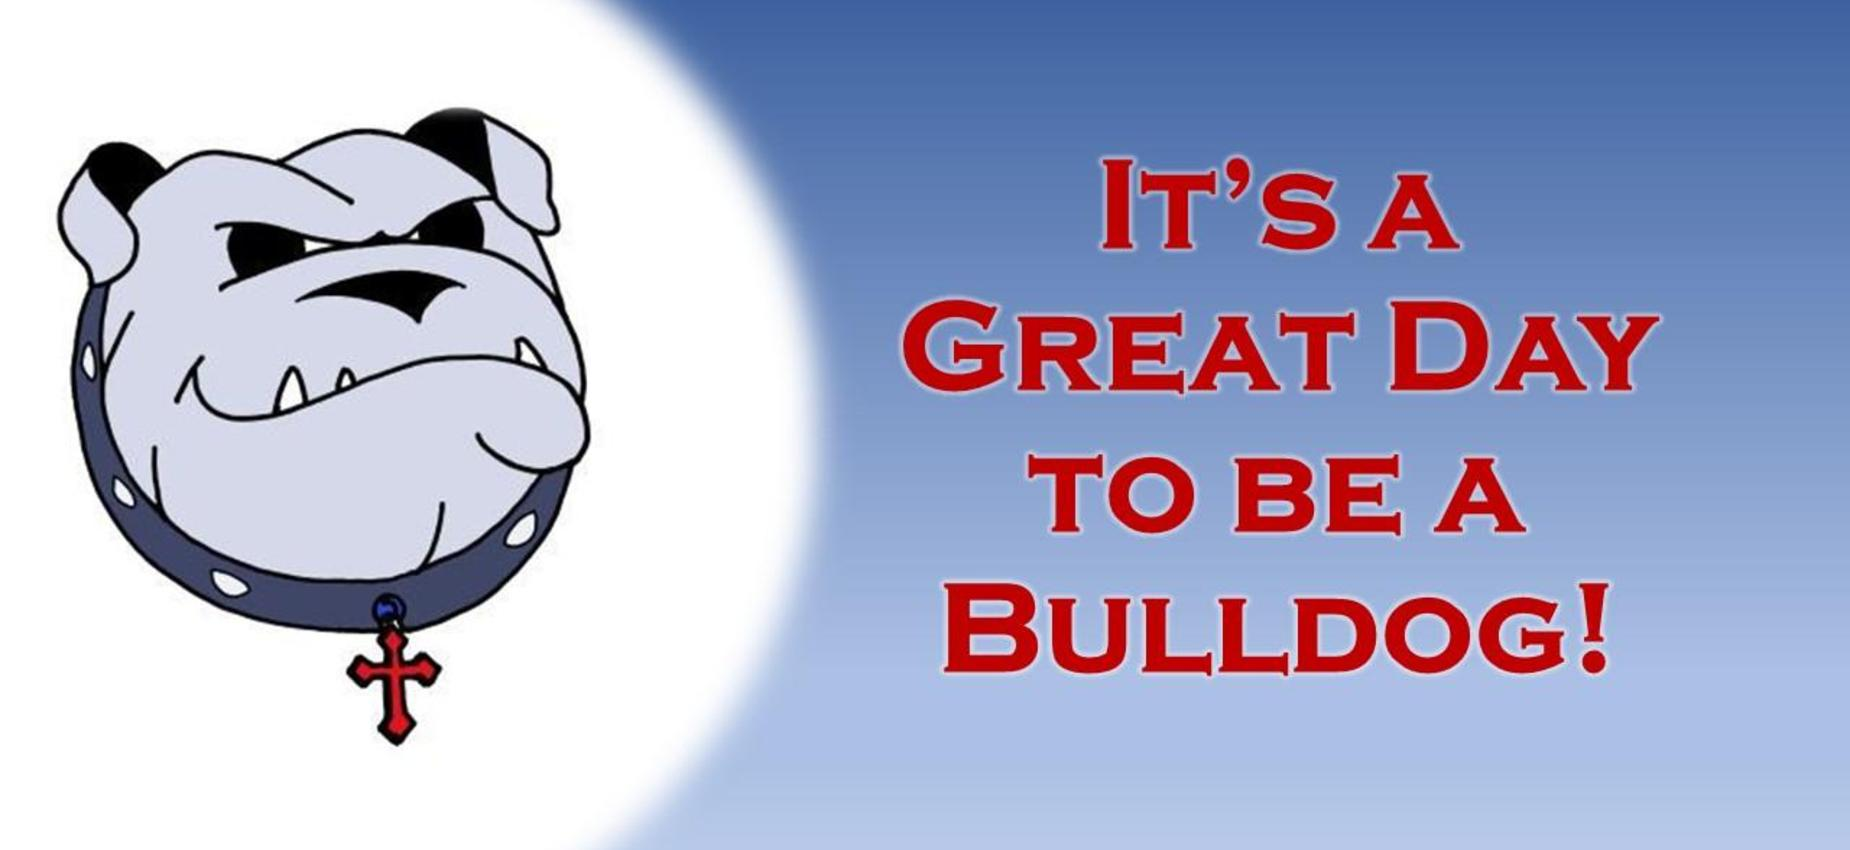 It's a Great Day to be a Bulldog!